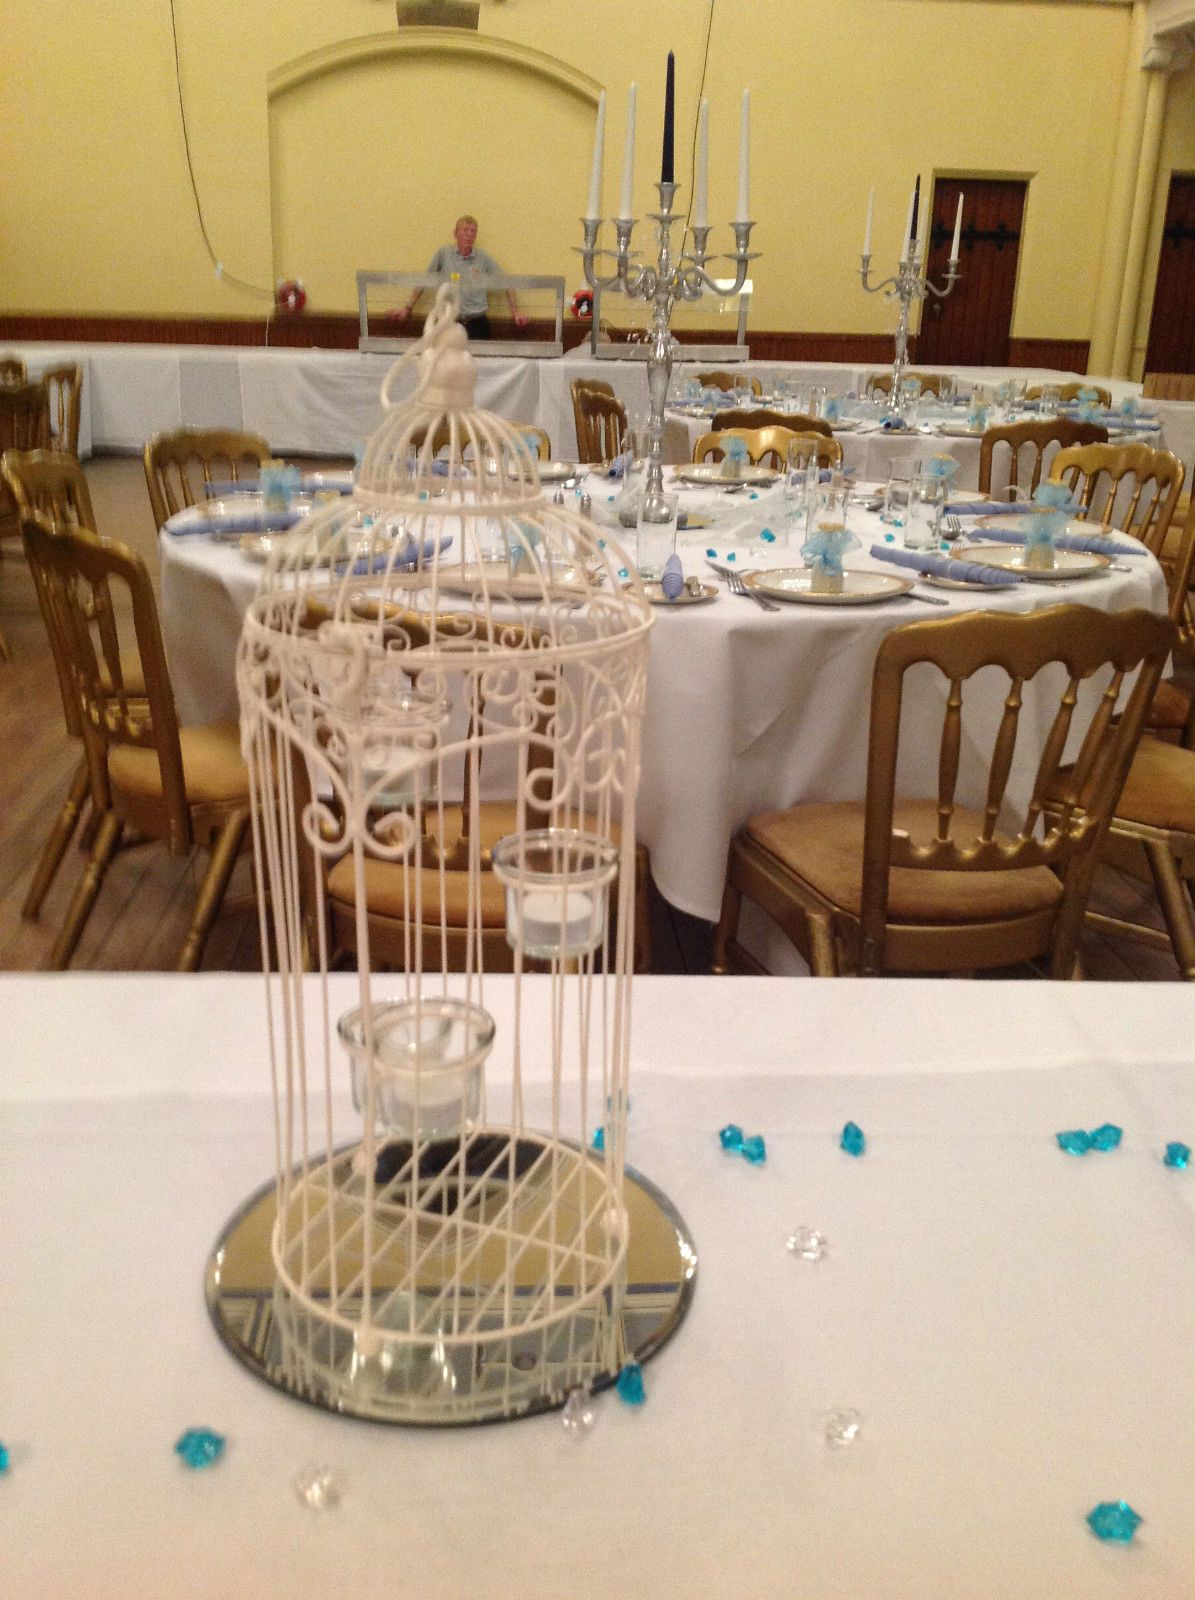 Cream wedding birdcage centrepiecetea light holders wedding table cream wedding birdcage centrepiece wedding table decorations for hire 500 ebay junglespirit Images